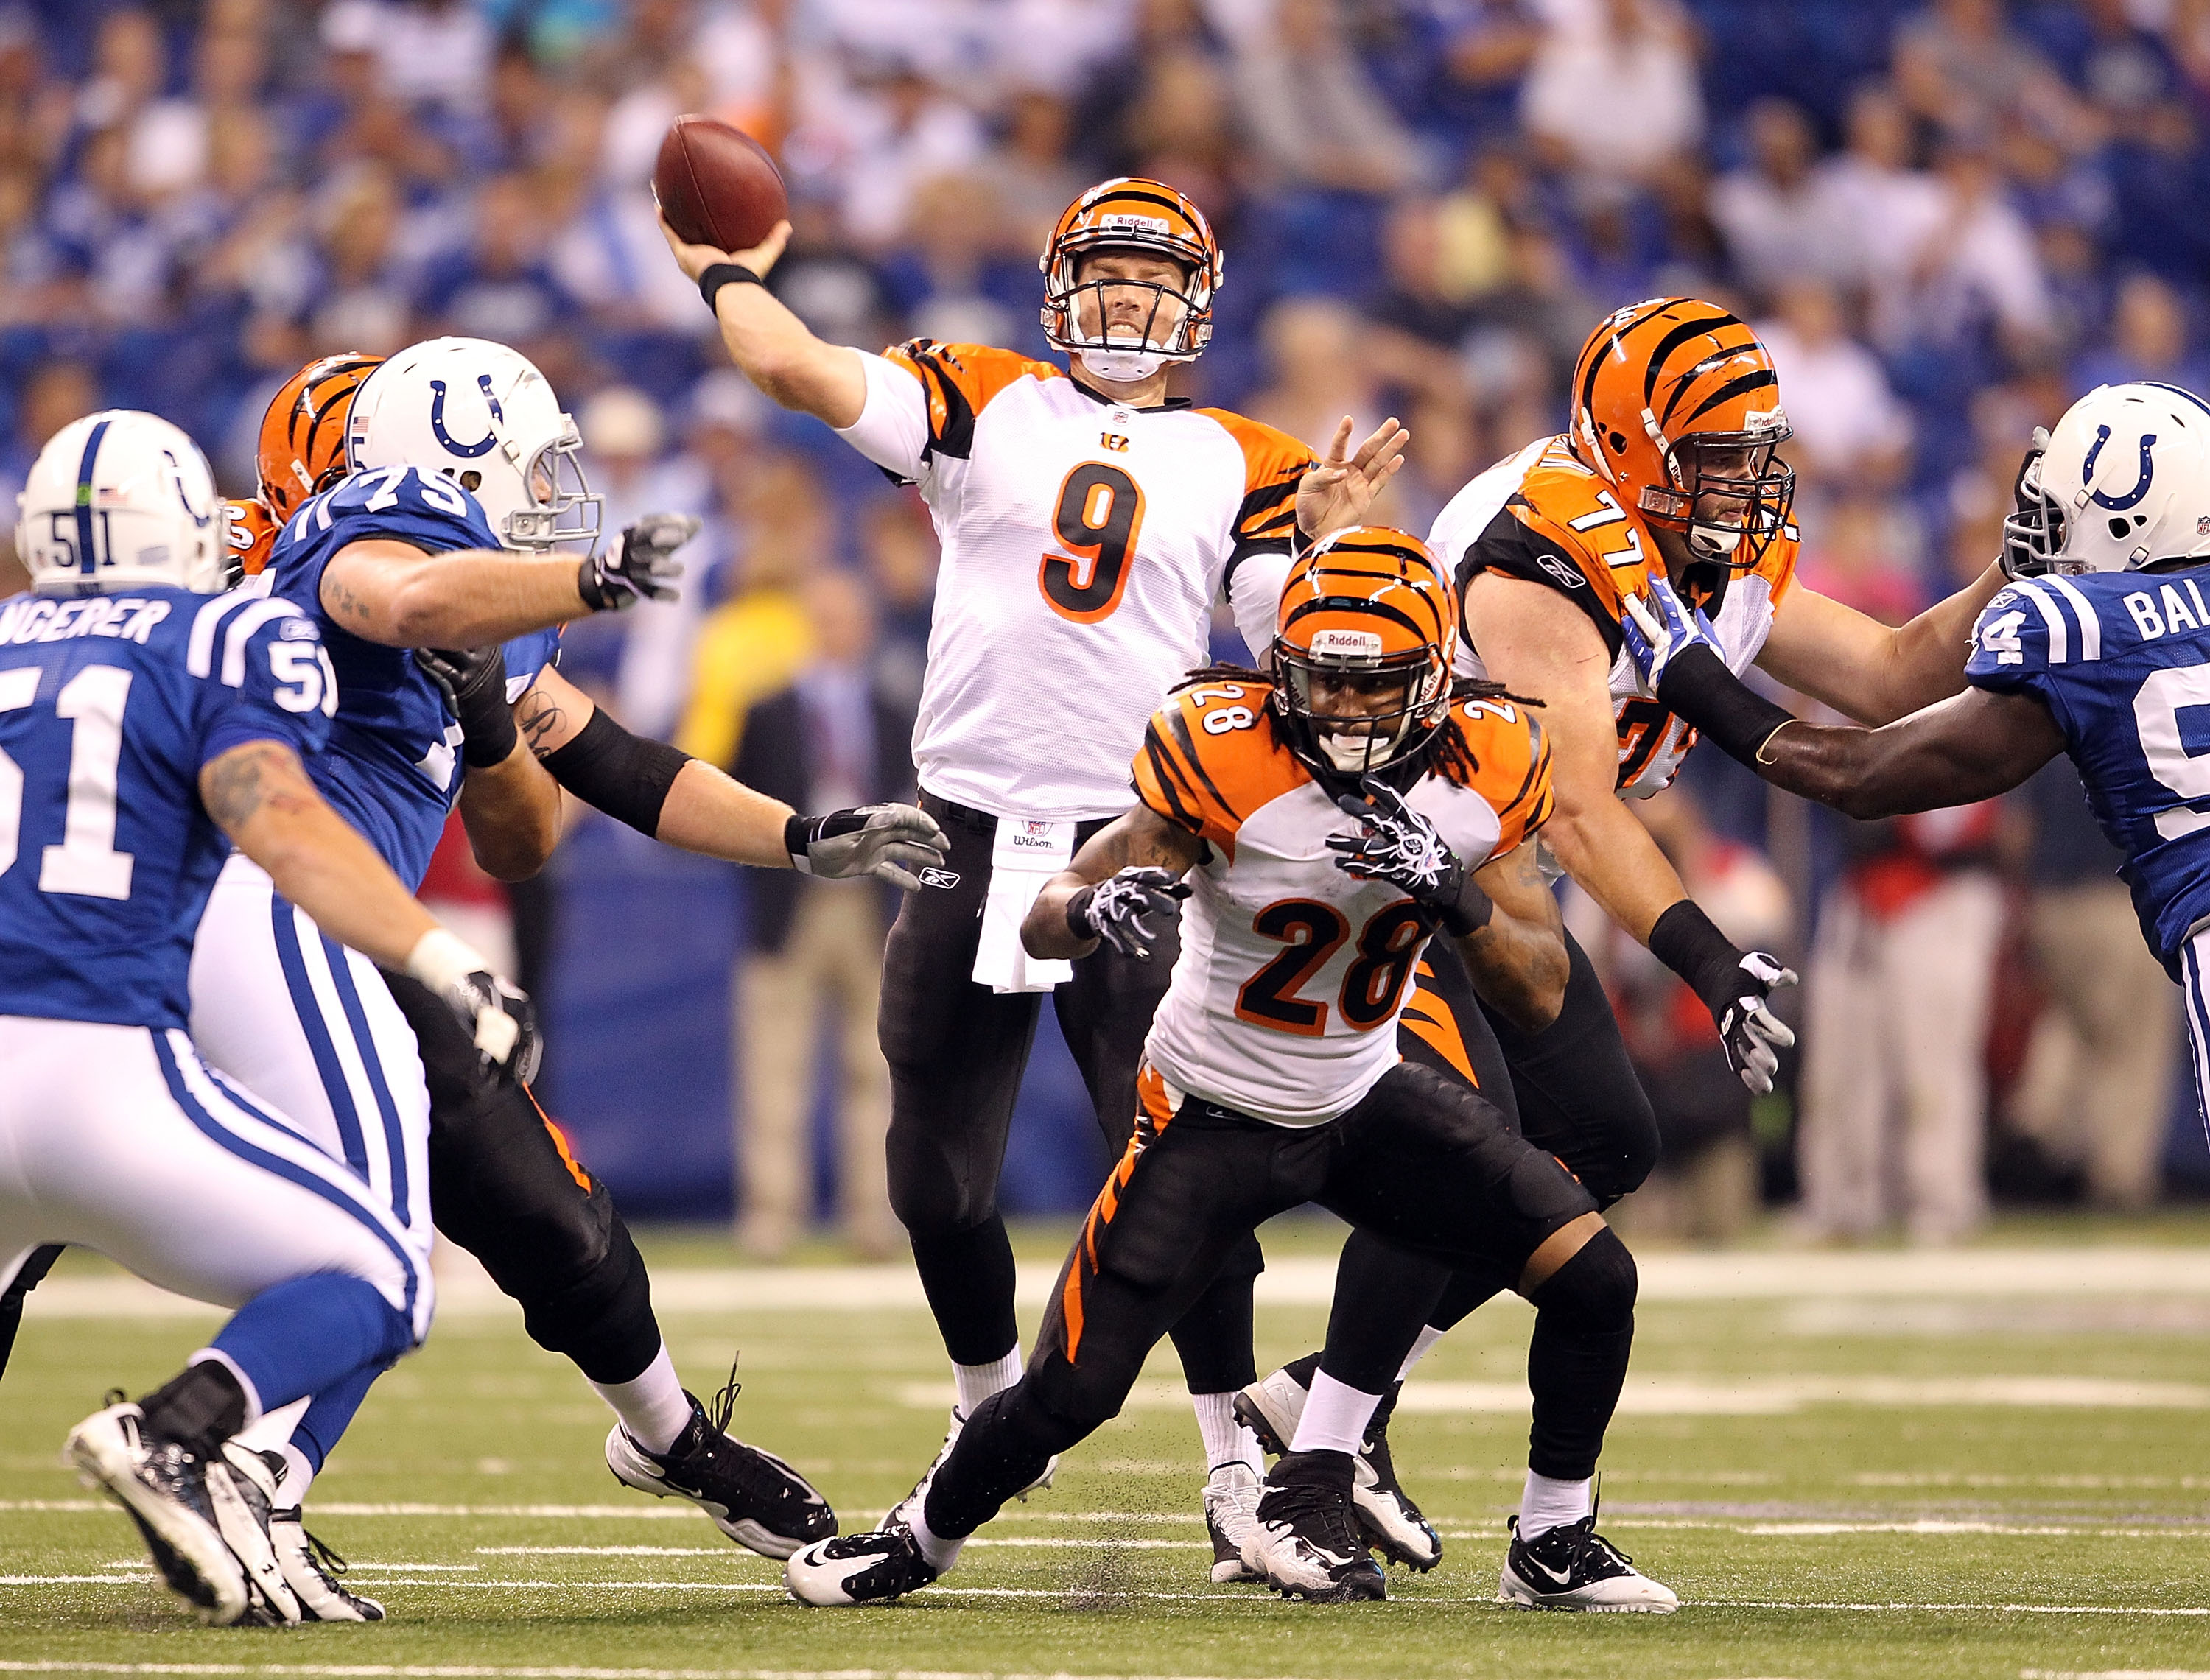 INDIANAPOLIS - SEPTEMBER 02:  Carson Palmer #9  of the Cincinnati Bengals throws a pass during the NFL preseason game against the Indianapolis Colts at Lucas Oil Stadium on September 2, 2010 in Indianapolis, Indiana.  (Photo by Andy Lyons/Getty Images)